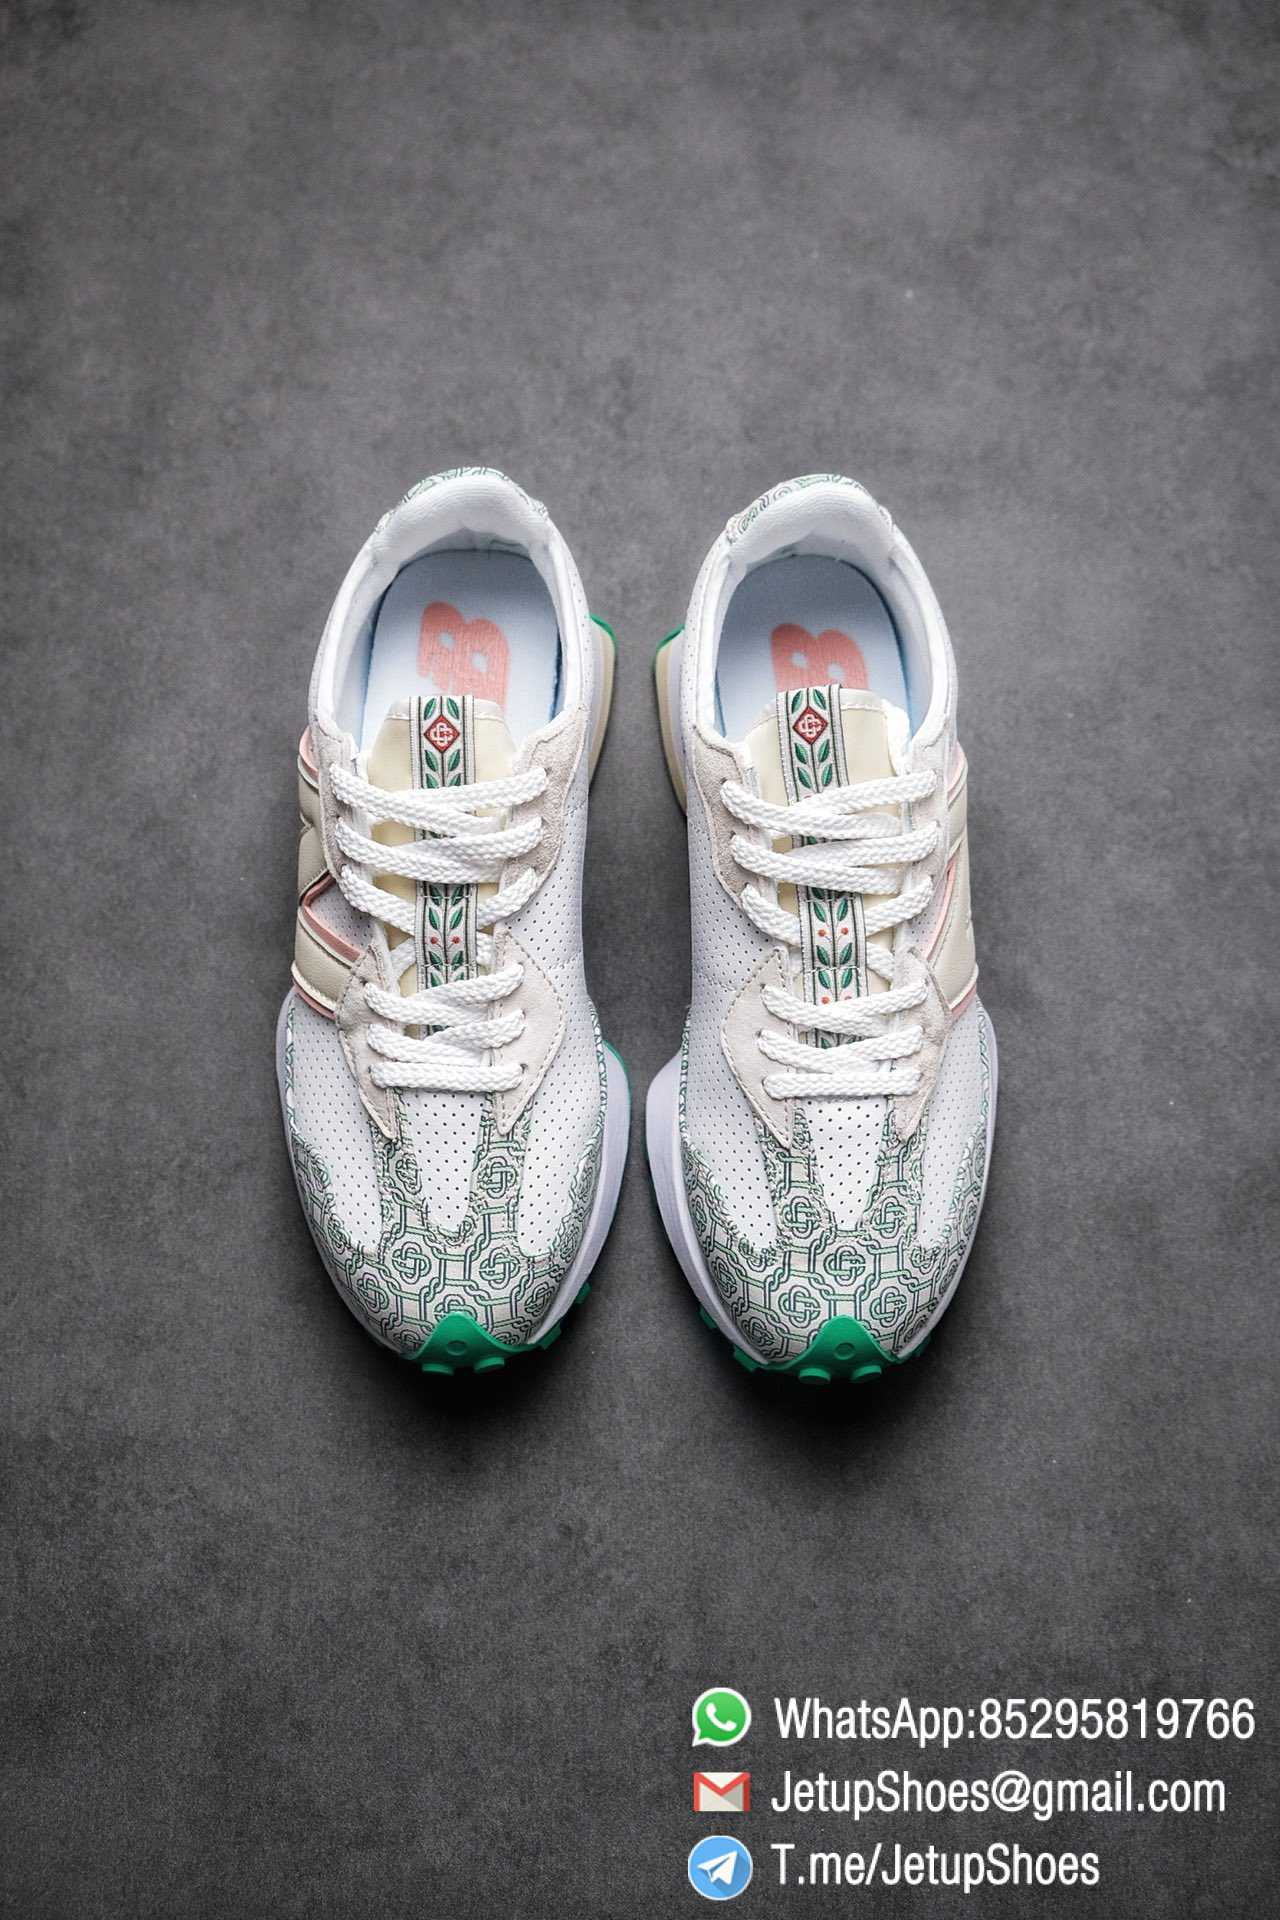 Replica Sneakers New Balance 327 Casablanca x 327 Munsell White Green Retro Running Shoes SKU MS327CAB Best RepSneakers 02